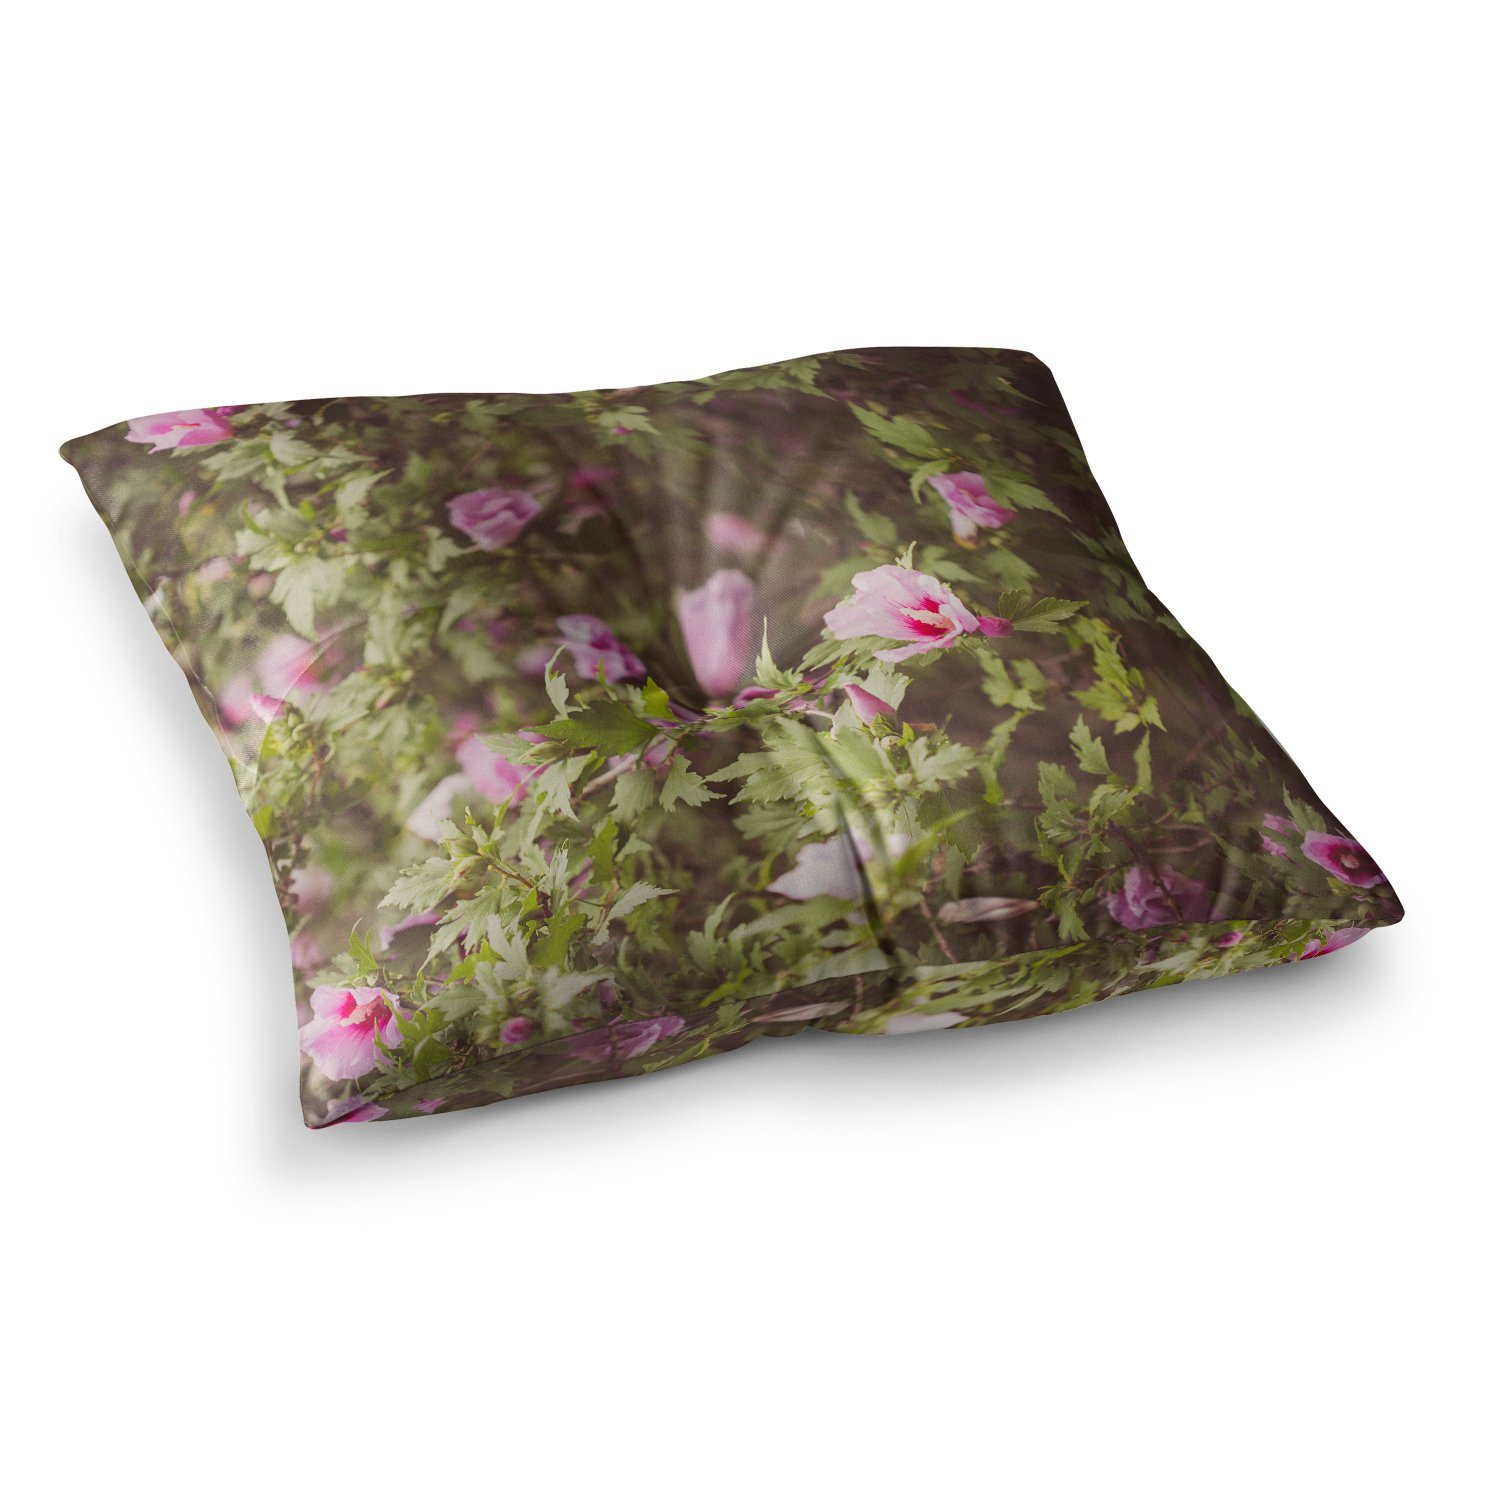 Kess InHouse Ann Barnes Lush Green Pink, 26' x 26' Square Floor Pillow